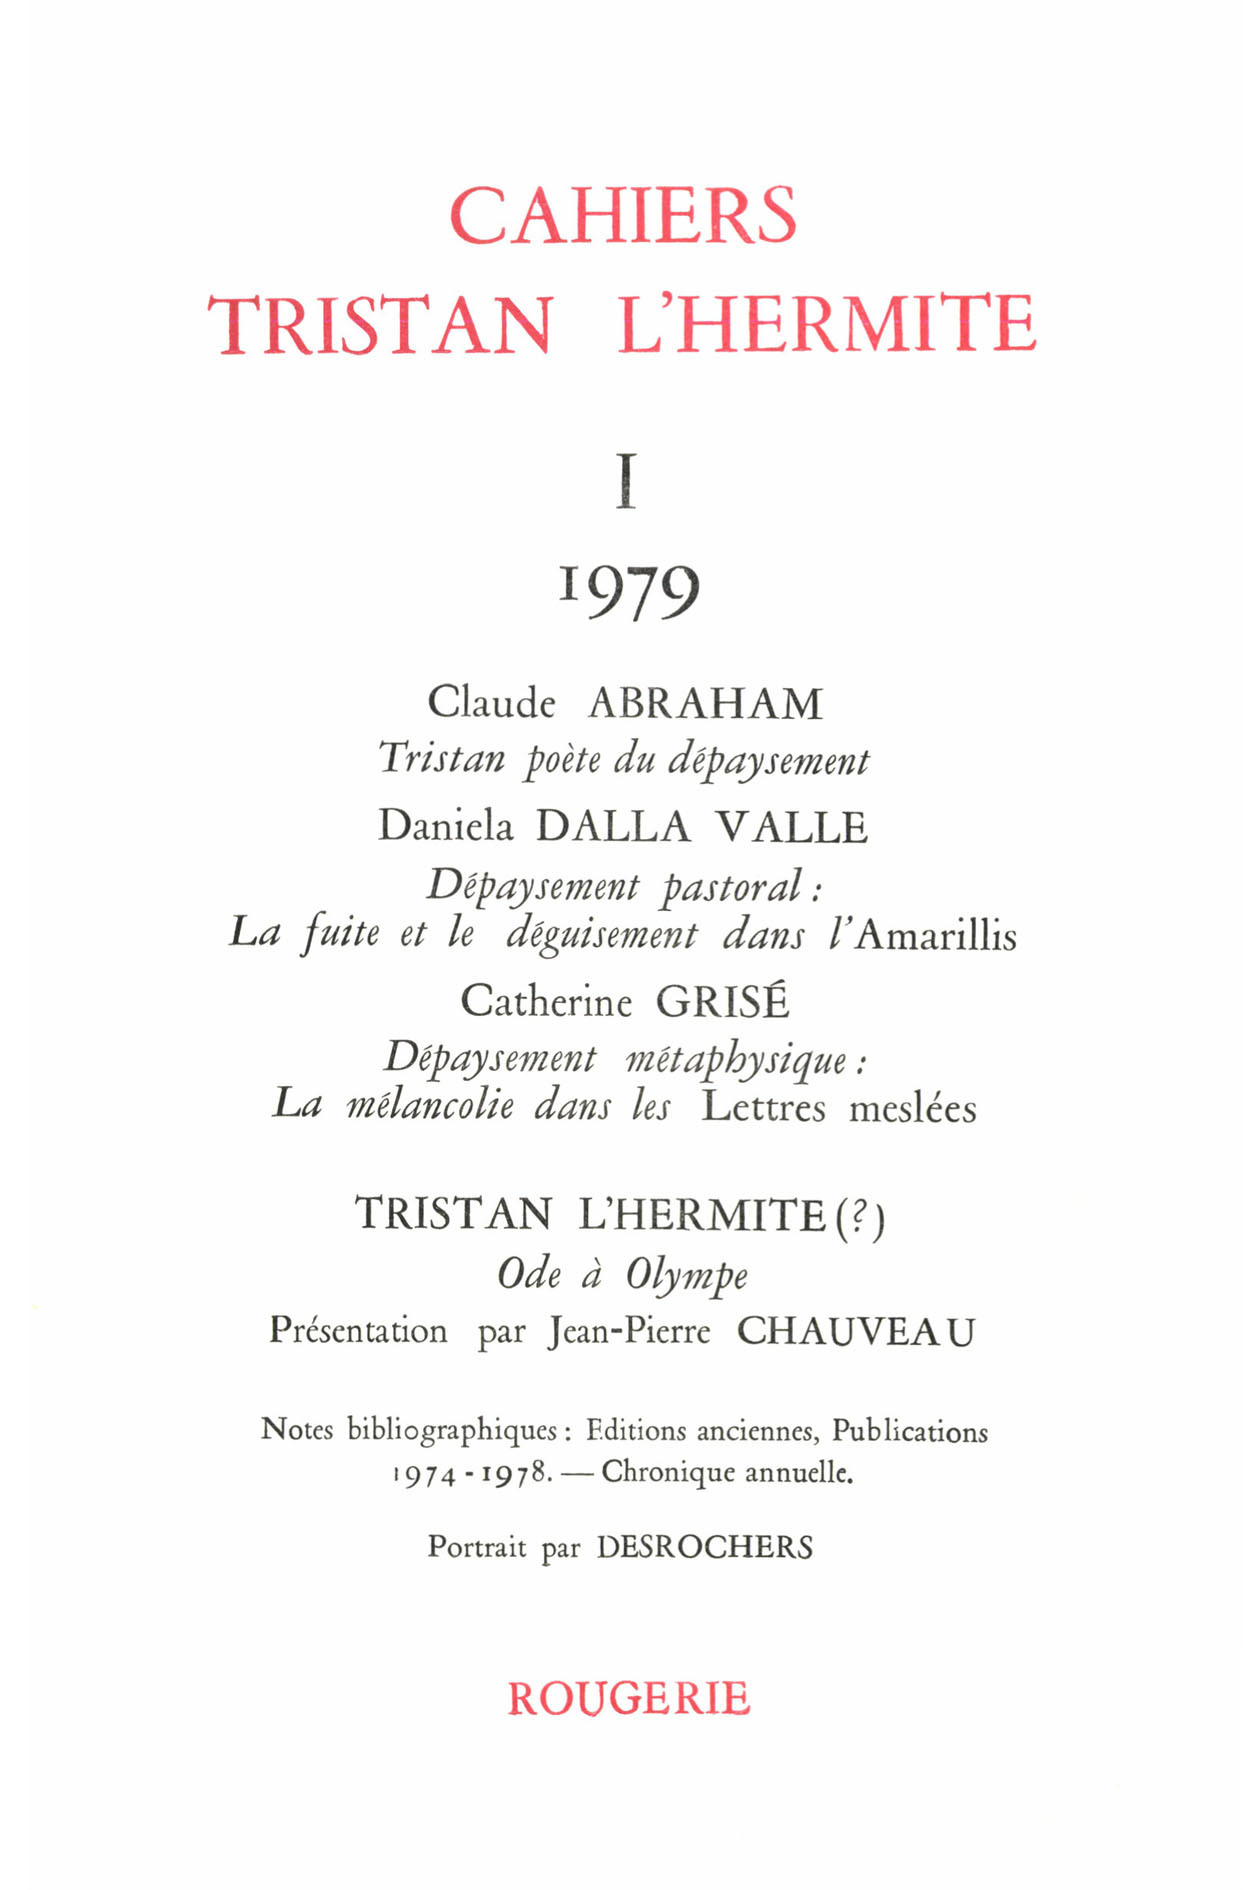 CAHIERS TRISTAN L'HERMITE 1979, I - VARIA